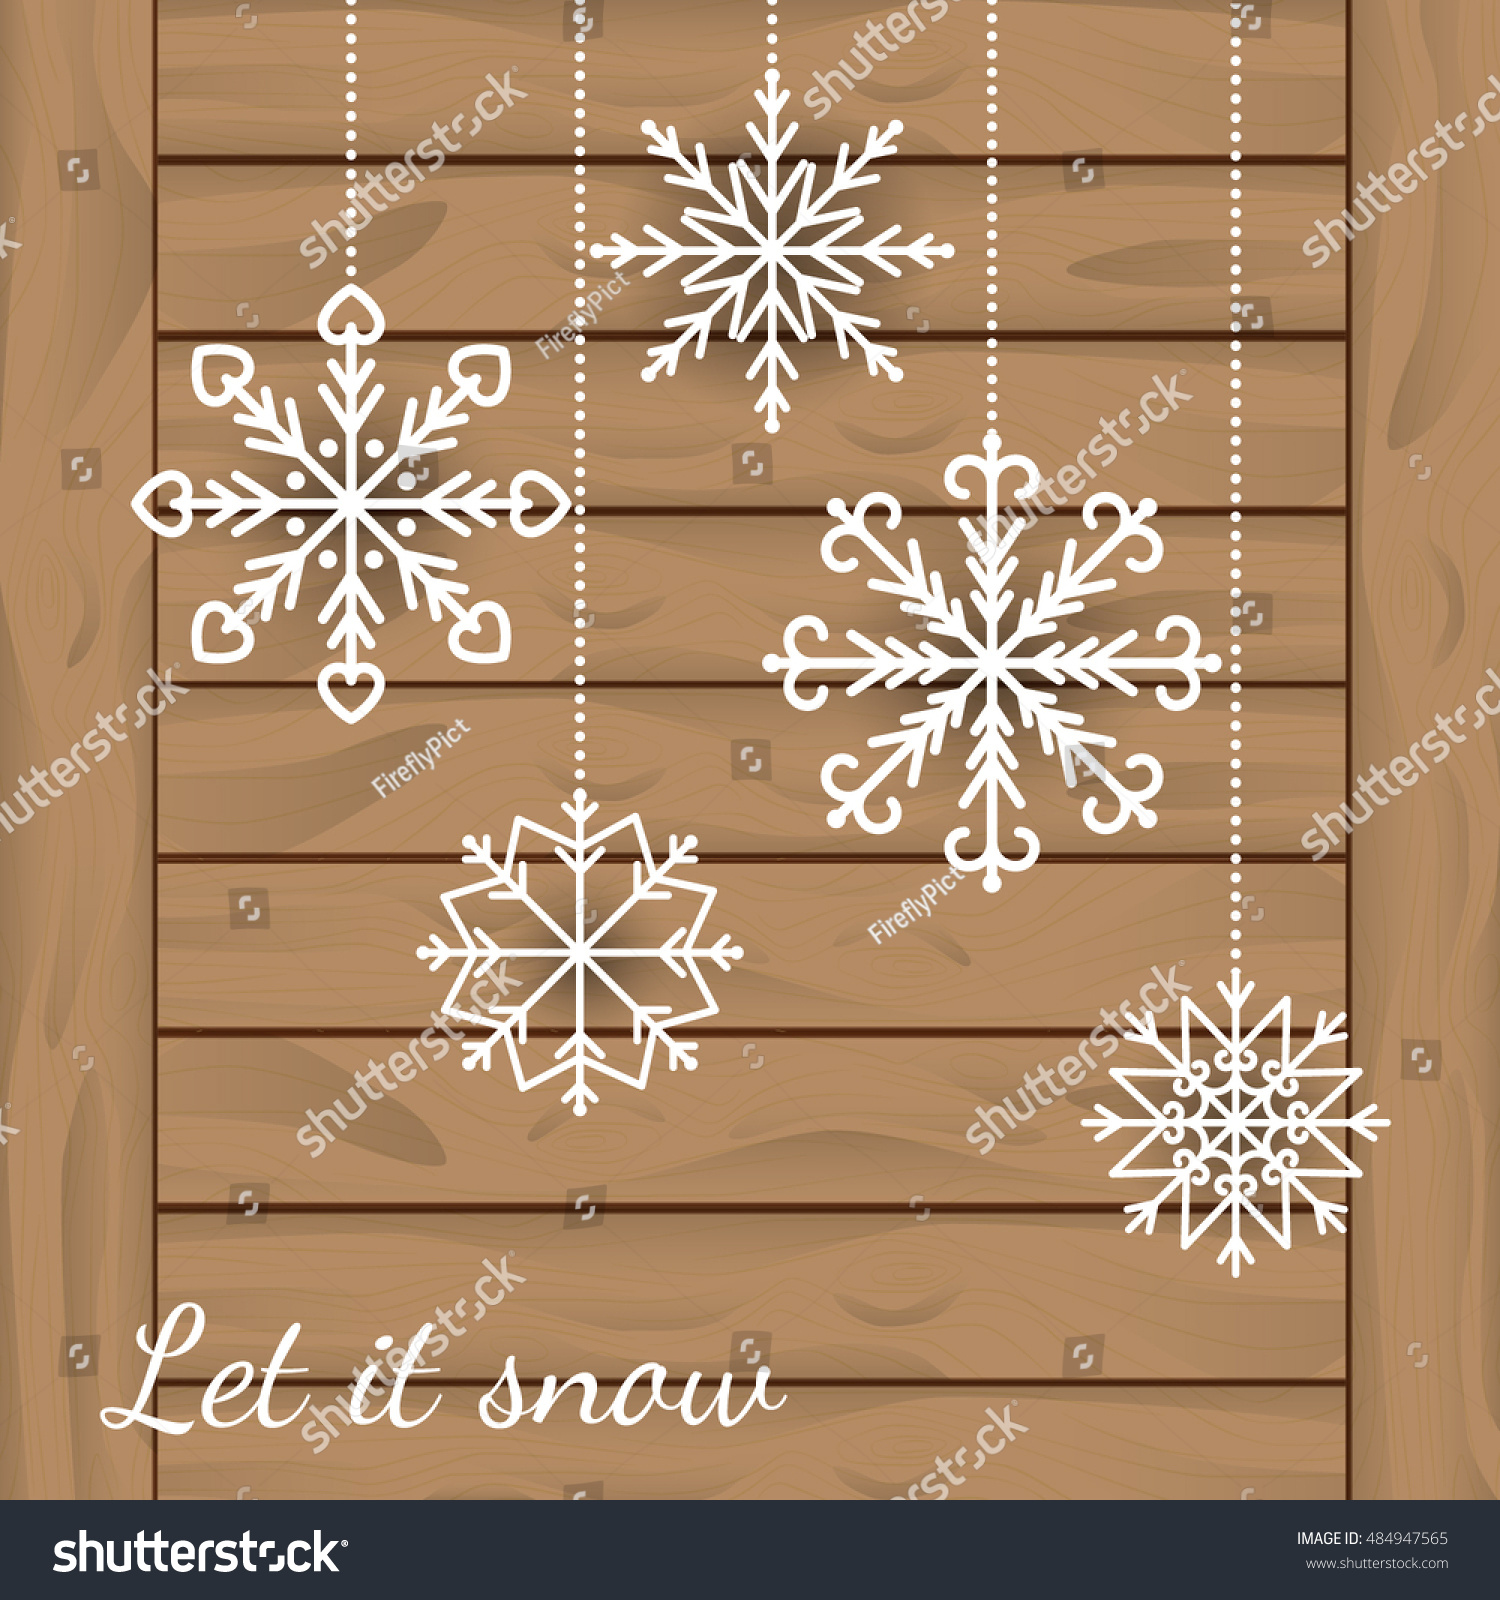 Abstract Winter Background White Snowflakes Hanging Stock Vector ...